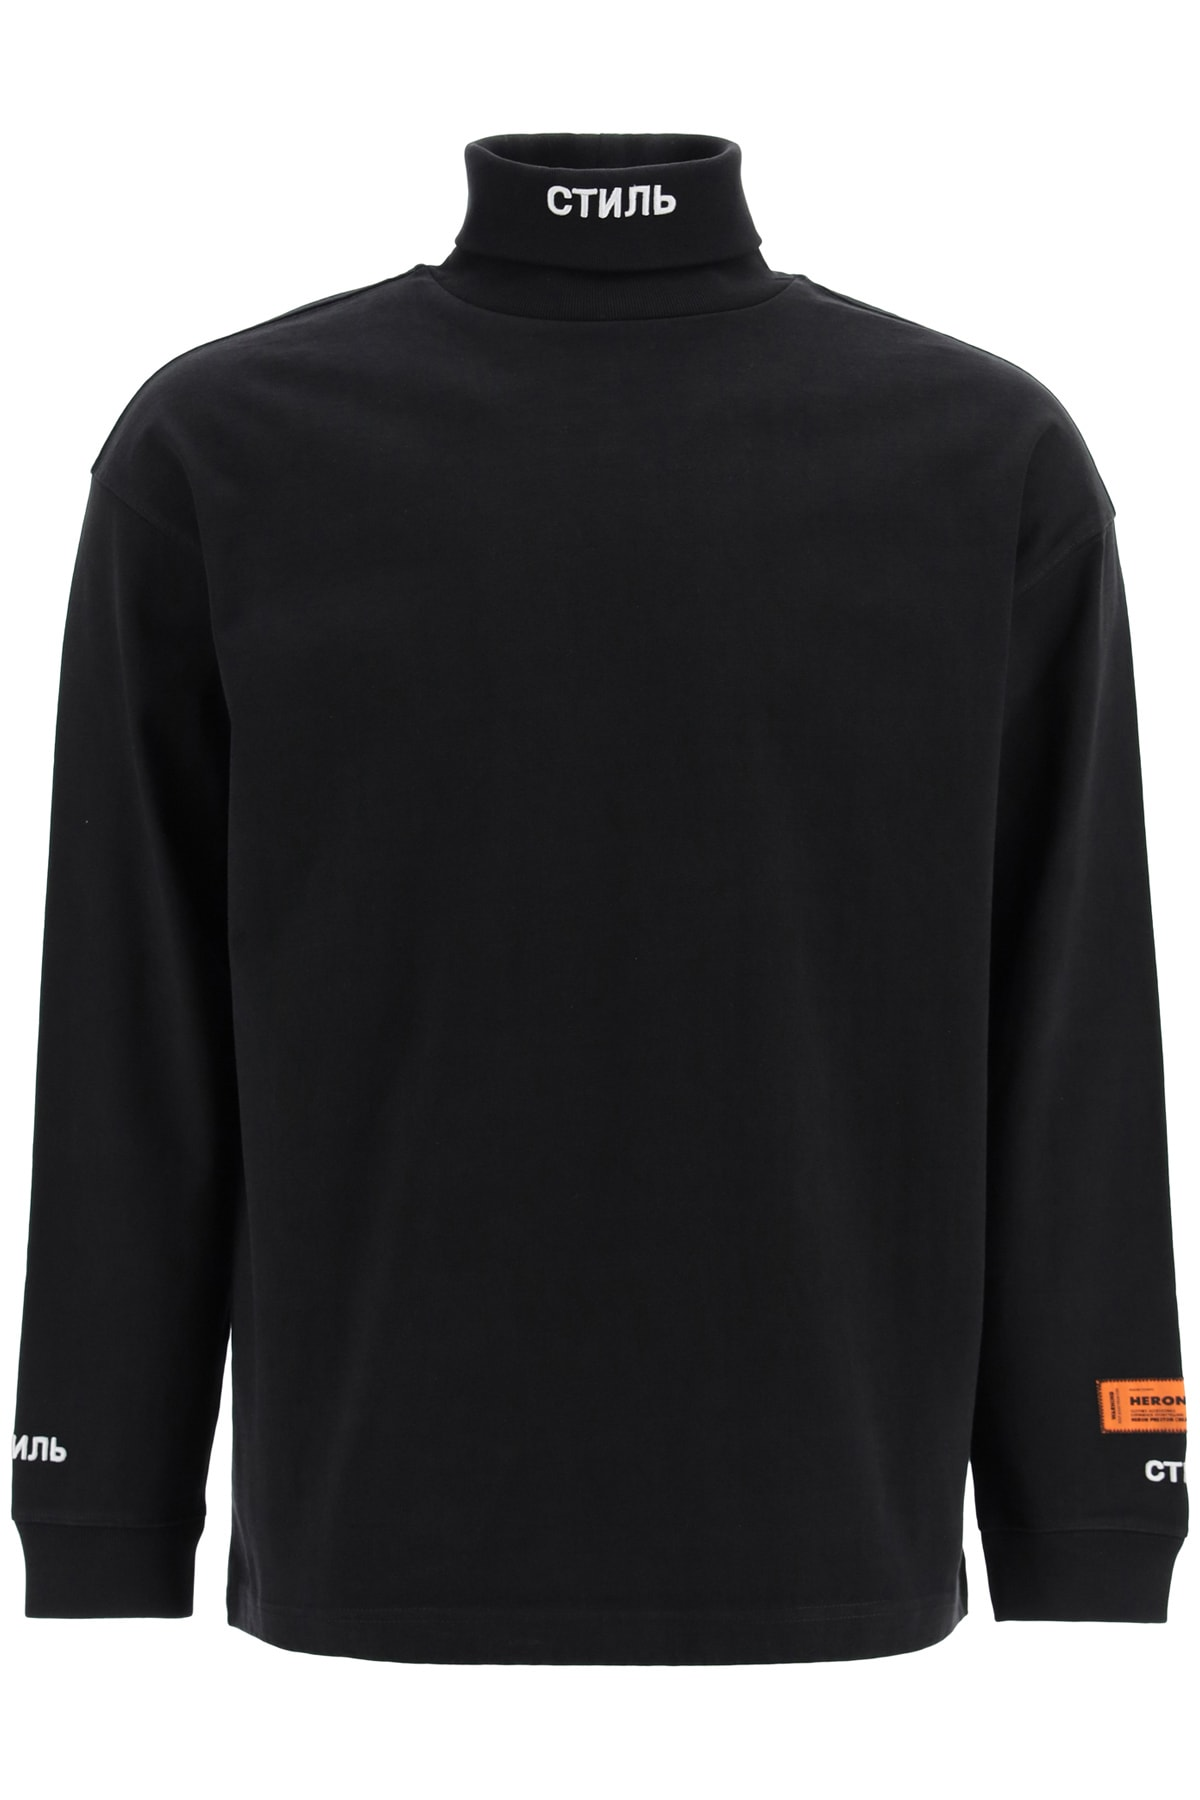 HERON PRESTON Cottons CNTMB COTTON T-SHIRT